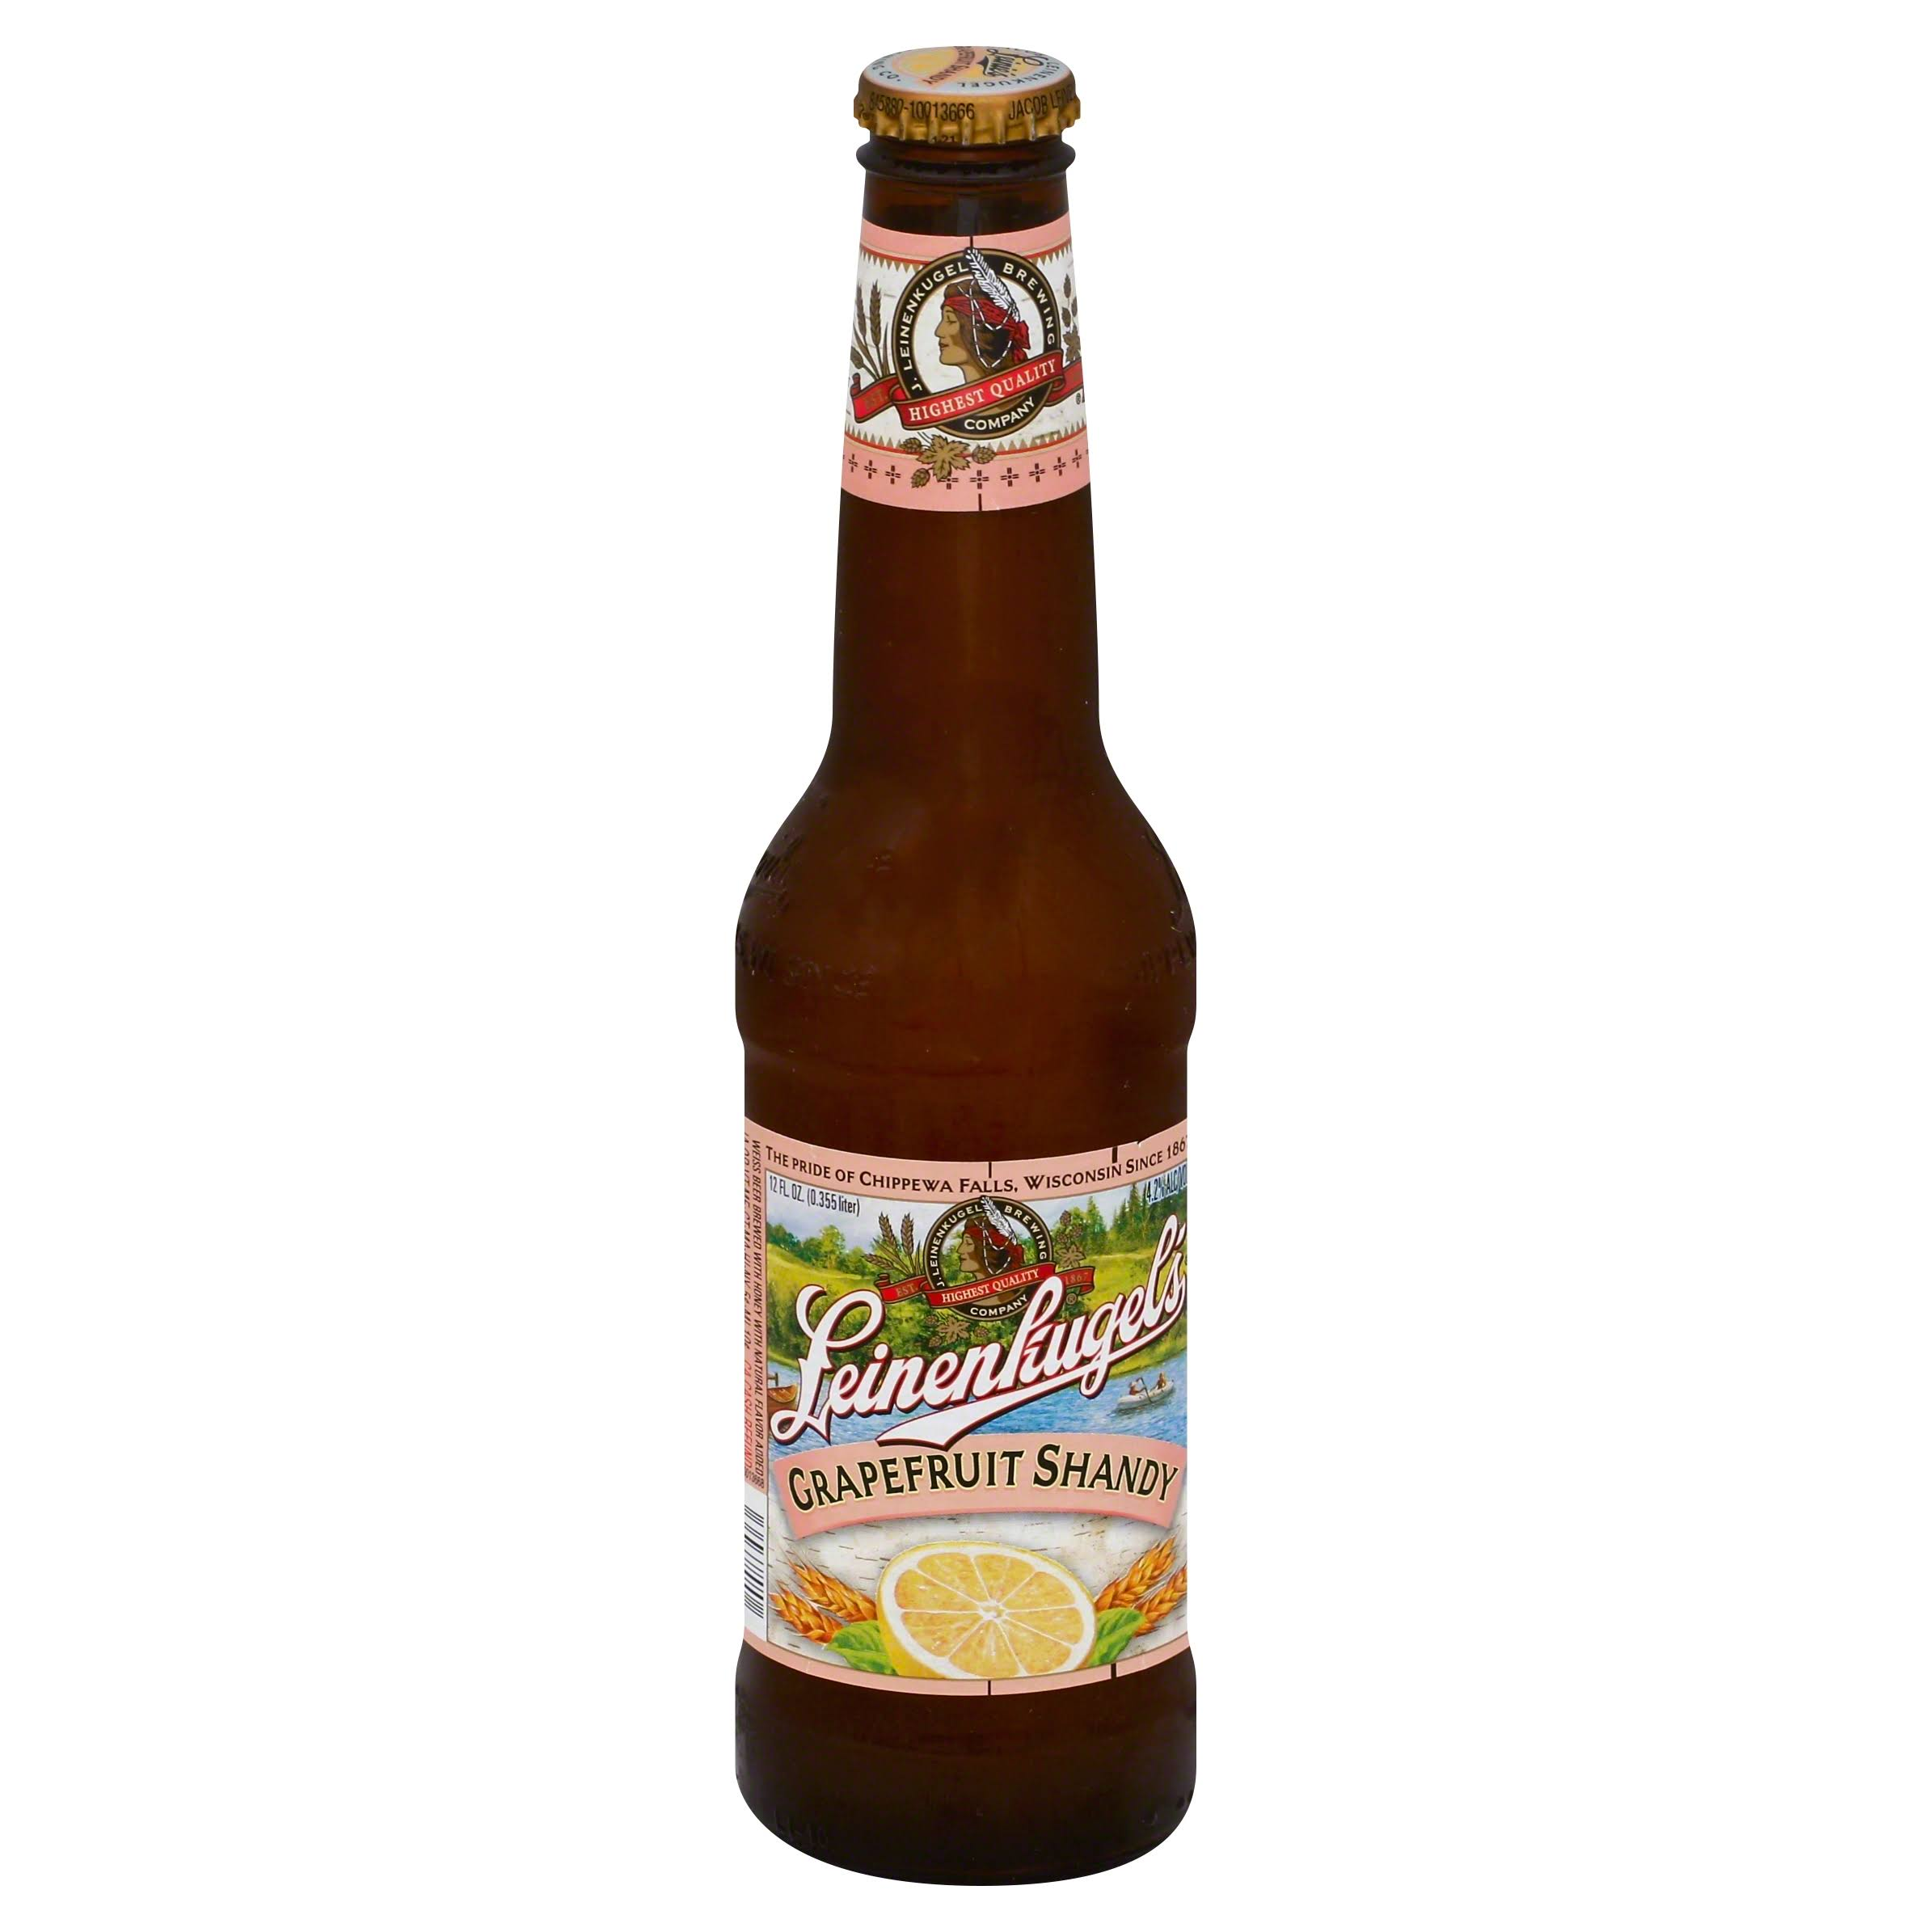 Leinenkugels Beer, Shandy, Grapefruit - 12 fl oz